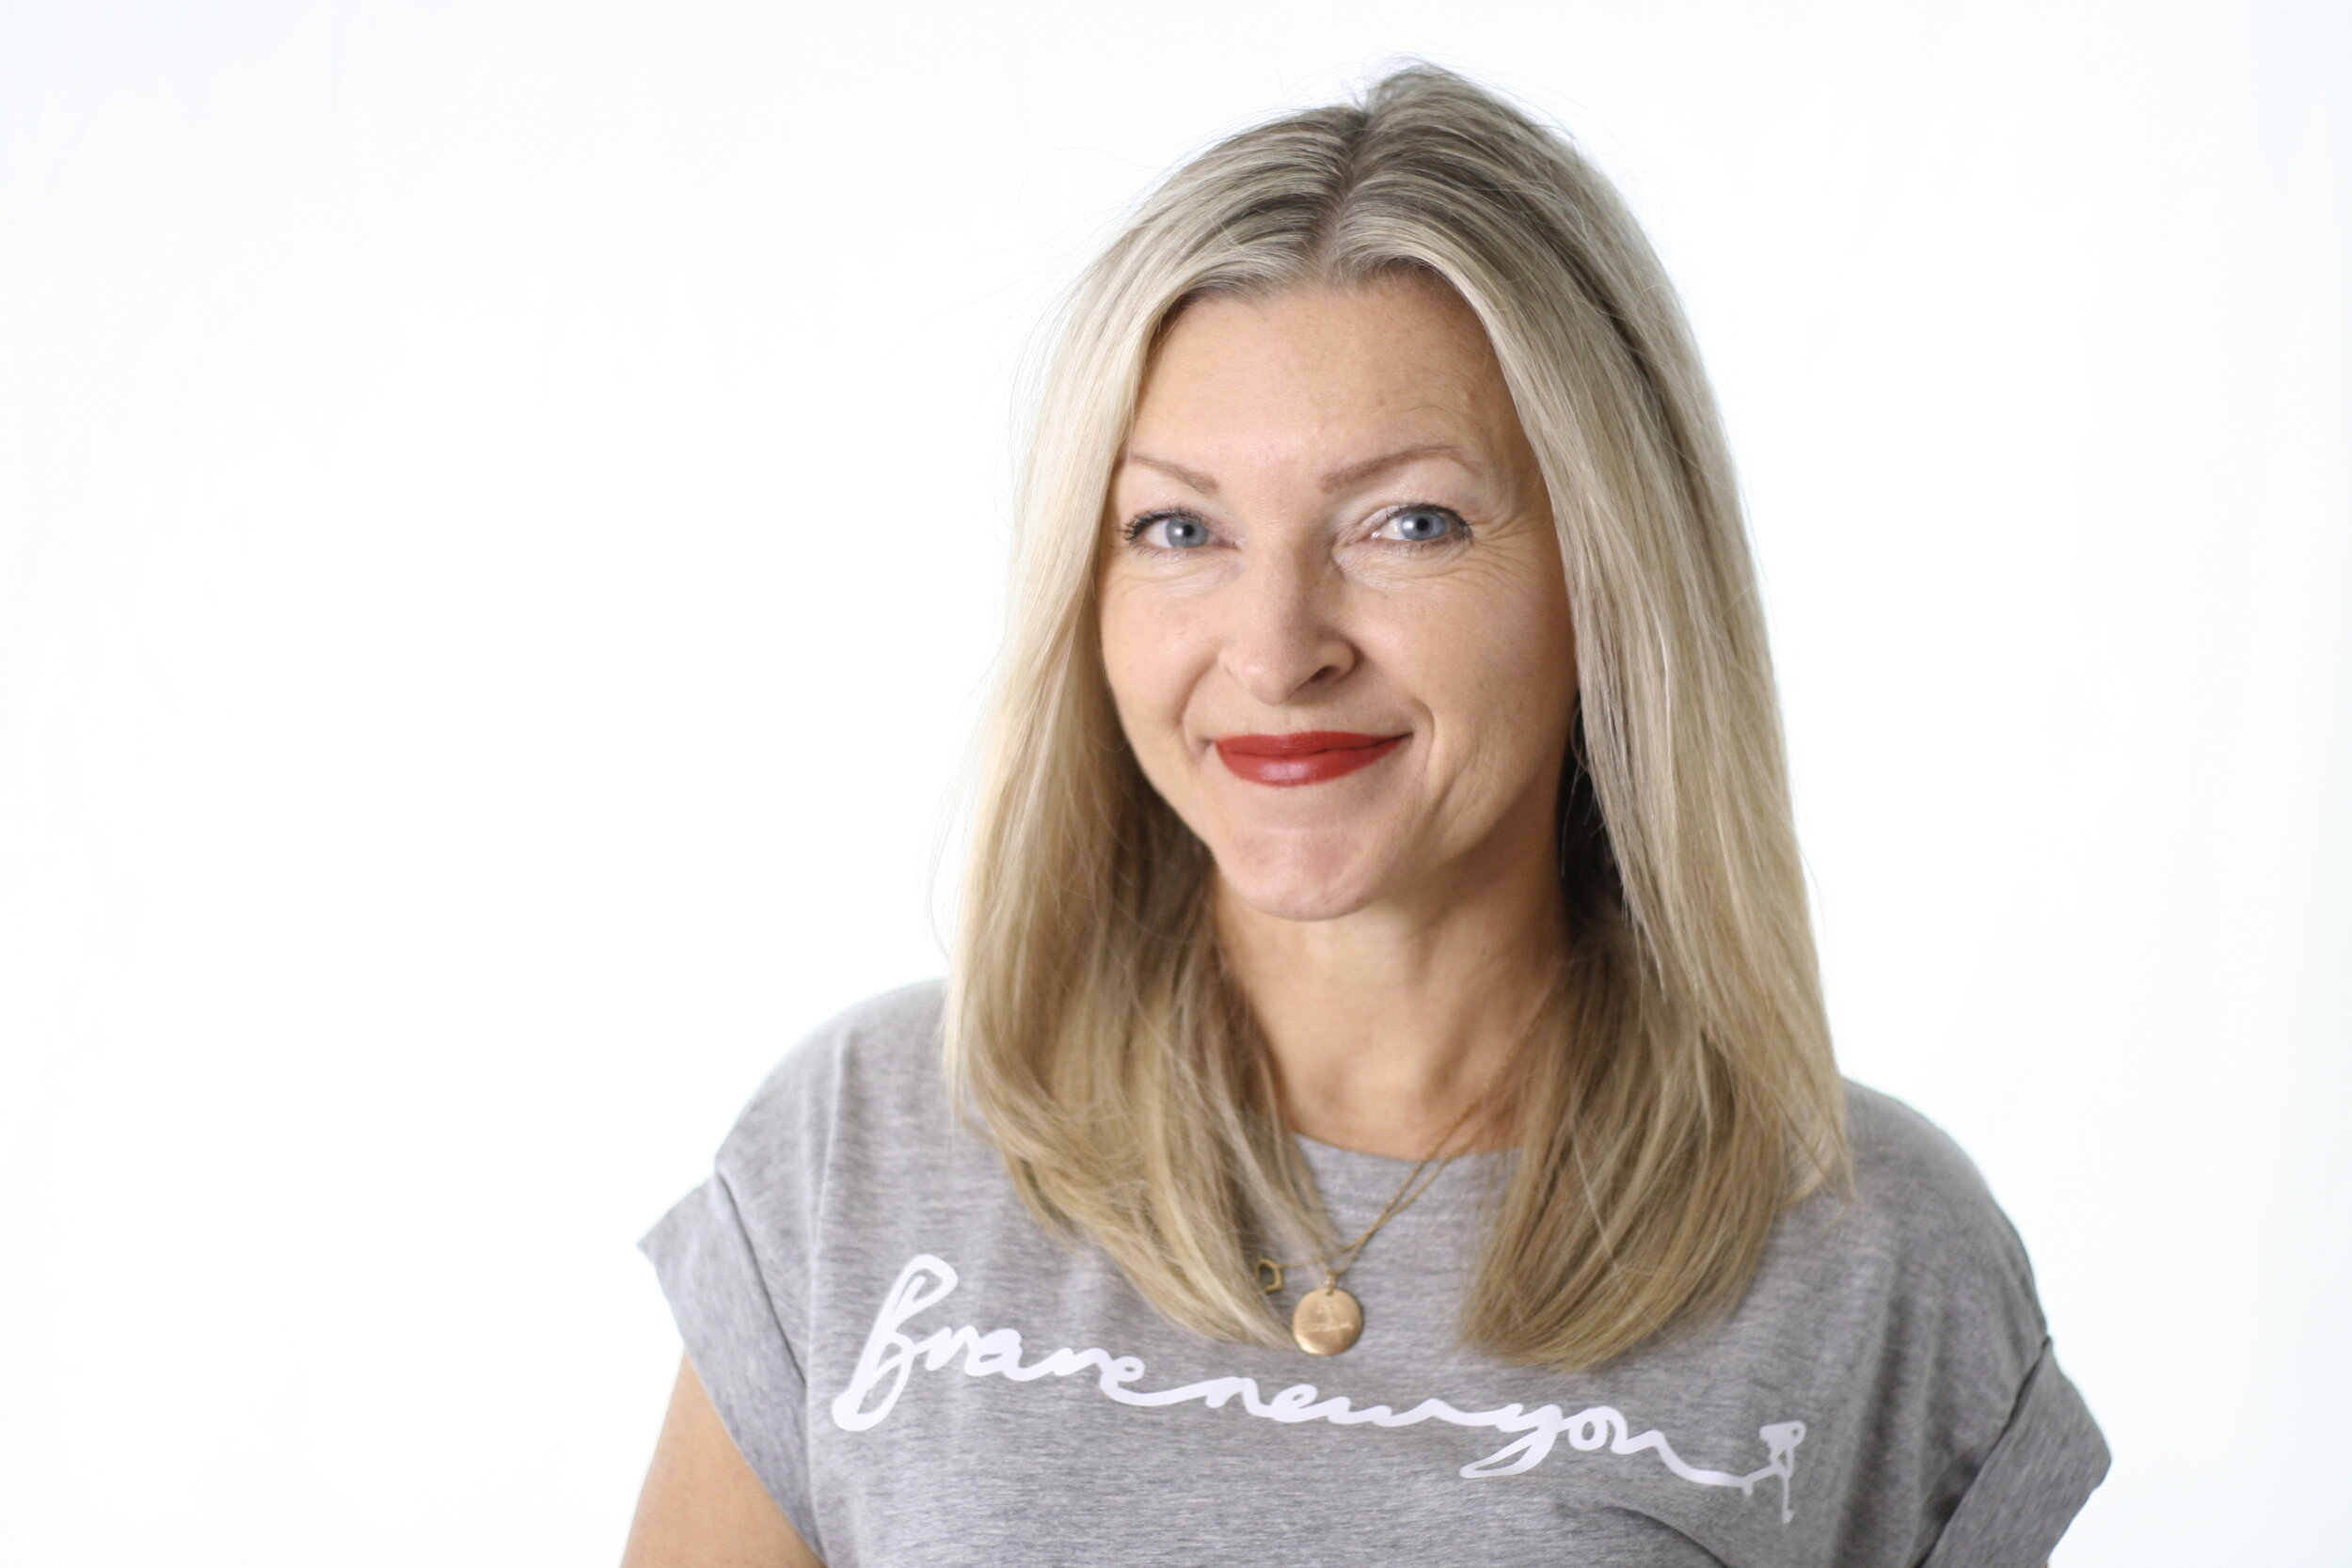 Your Coach - Lou Hamilton has been a coach for 16 years, trained coaches at an accredited coaching academy & is dedicated to helping individuals & brand members be confident, creative & impactful. Writer & illustrator of Brave New New Girl- How to be Fearless, and the self-help book Fear Less, Lou is also an artist & filmmaker.